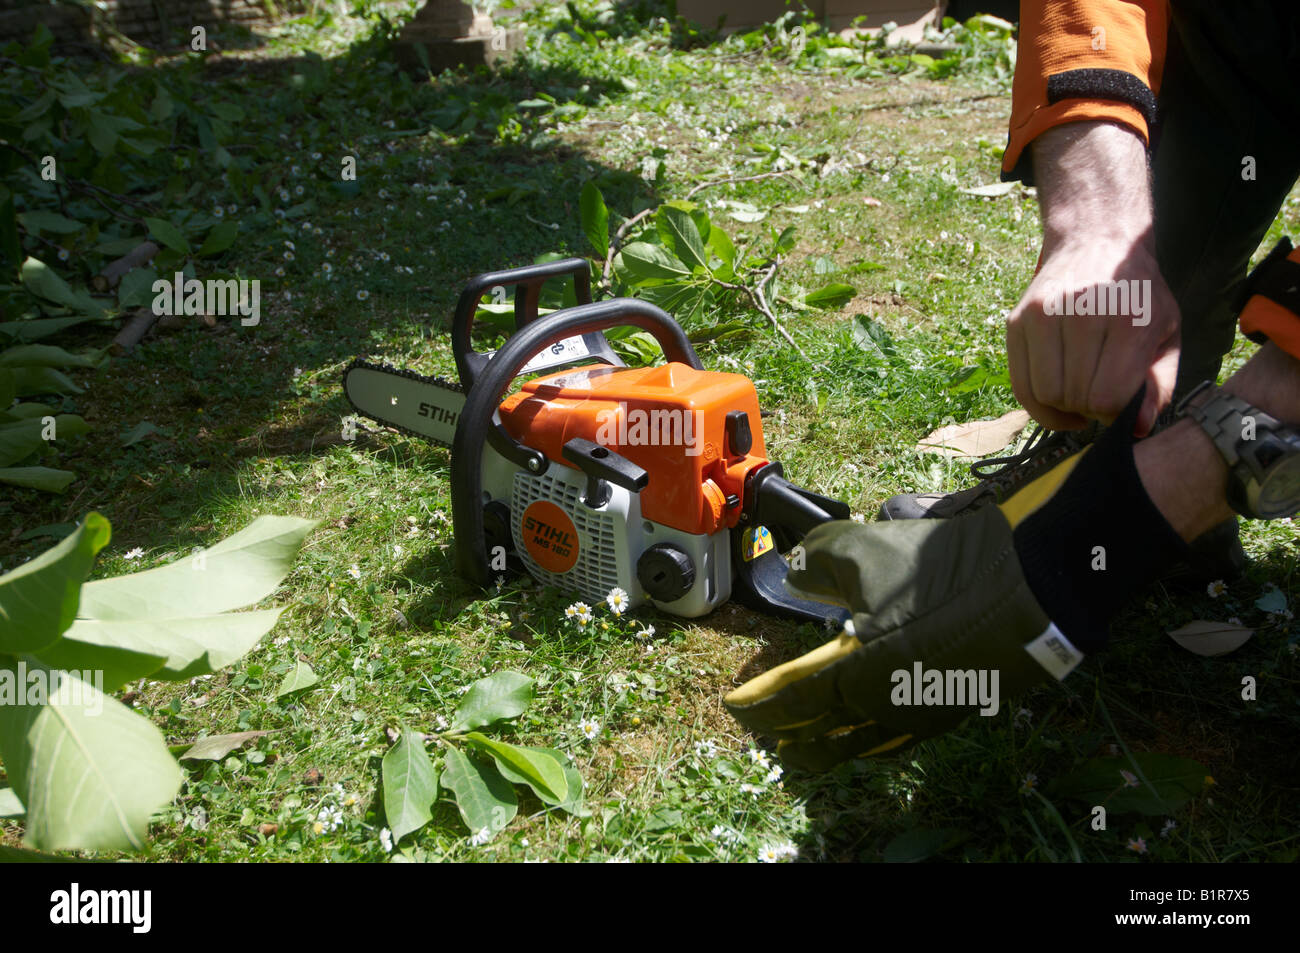 Putting chain back on stock photos putting chain back on stock man in full protective stihl clothing putting chainsaw gloves on before operating his power tool keyboard keysfo Choice Image